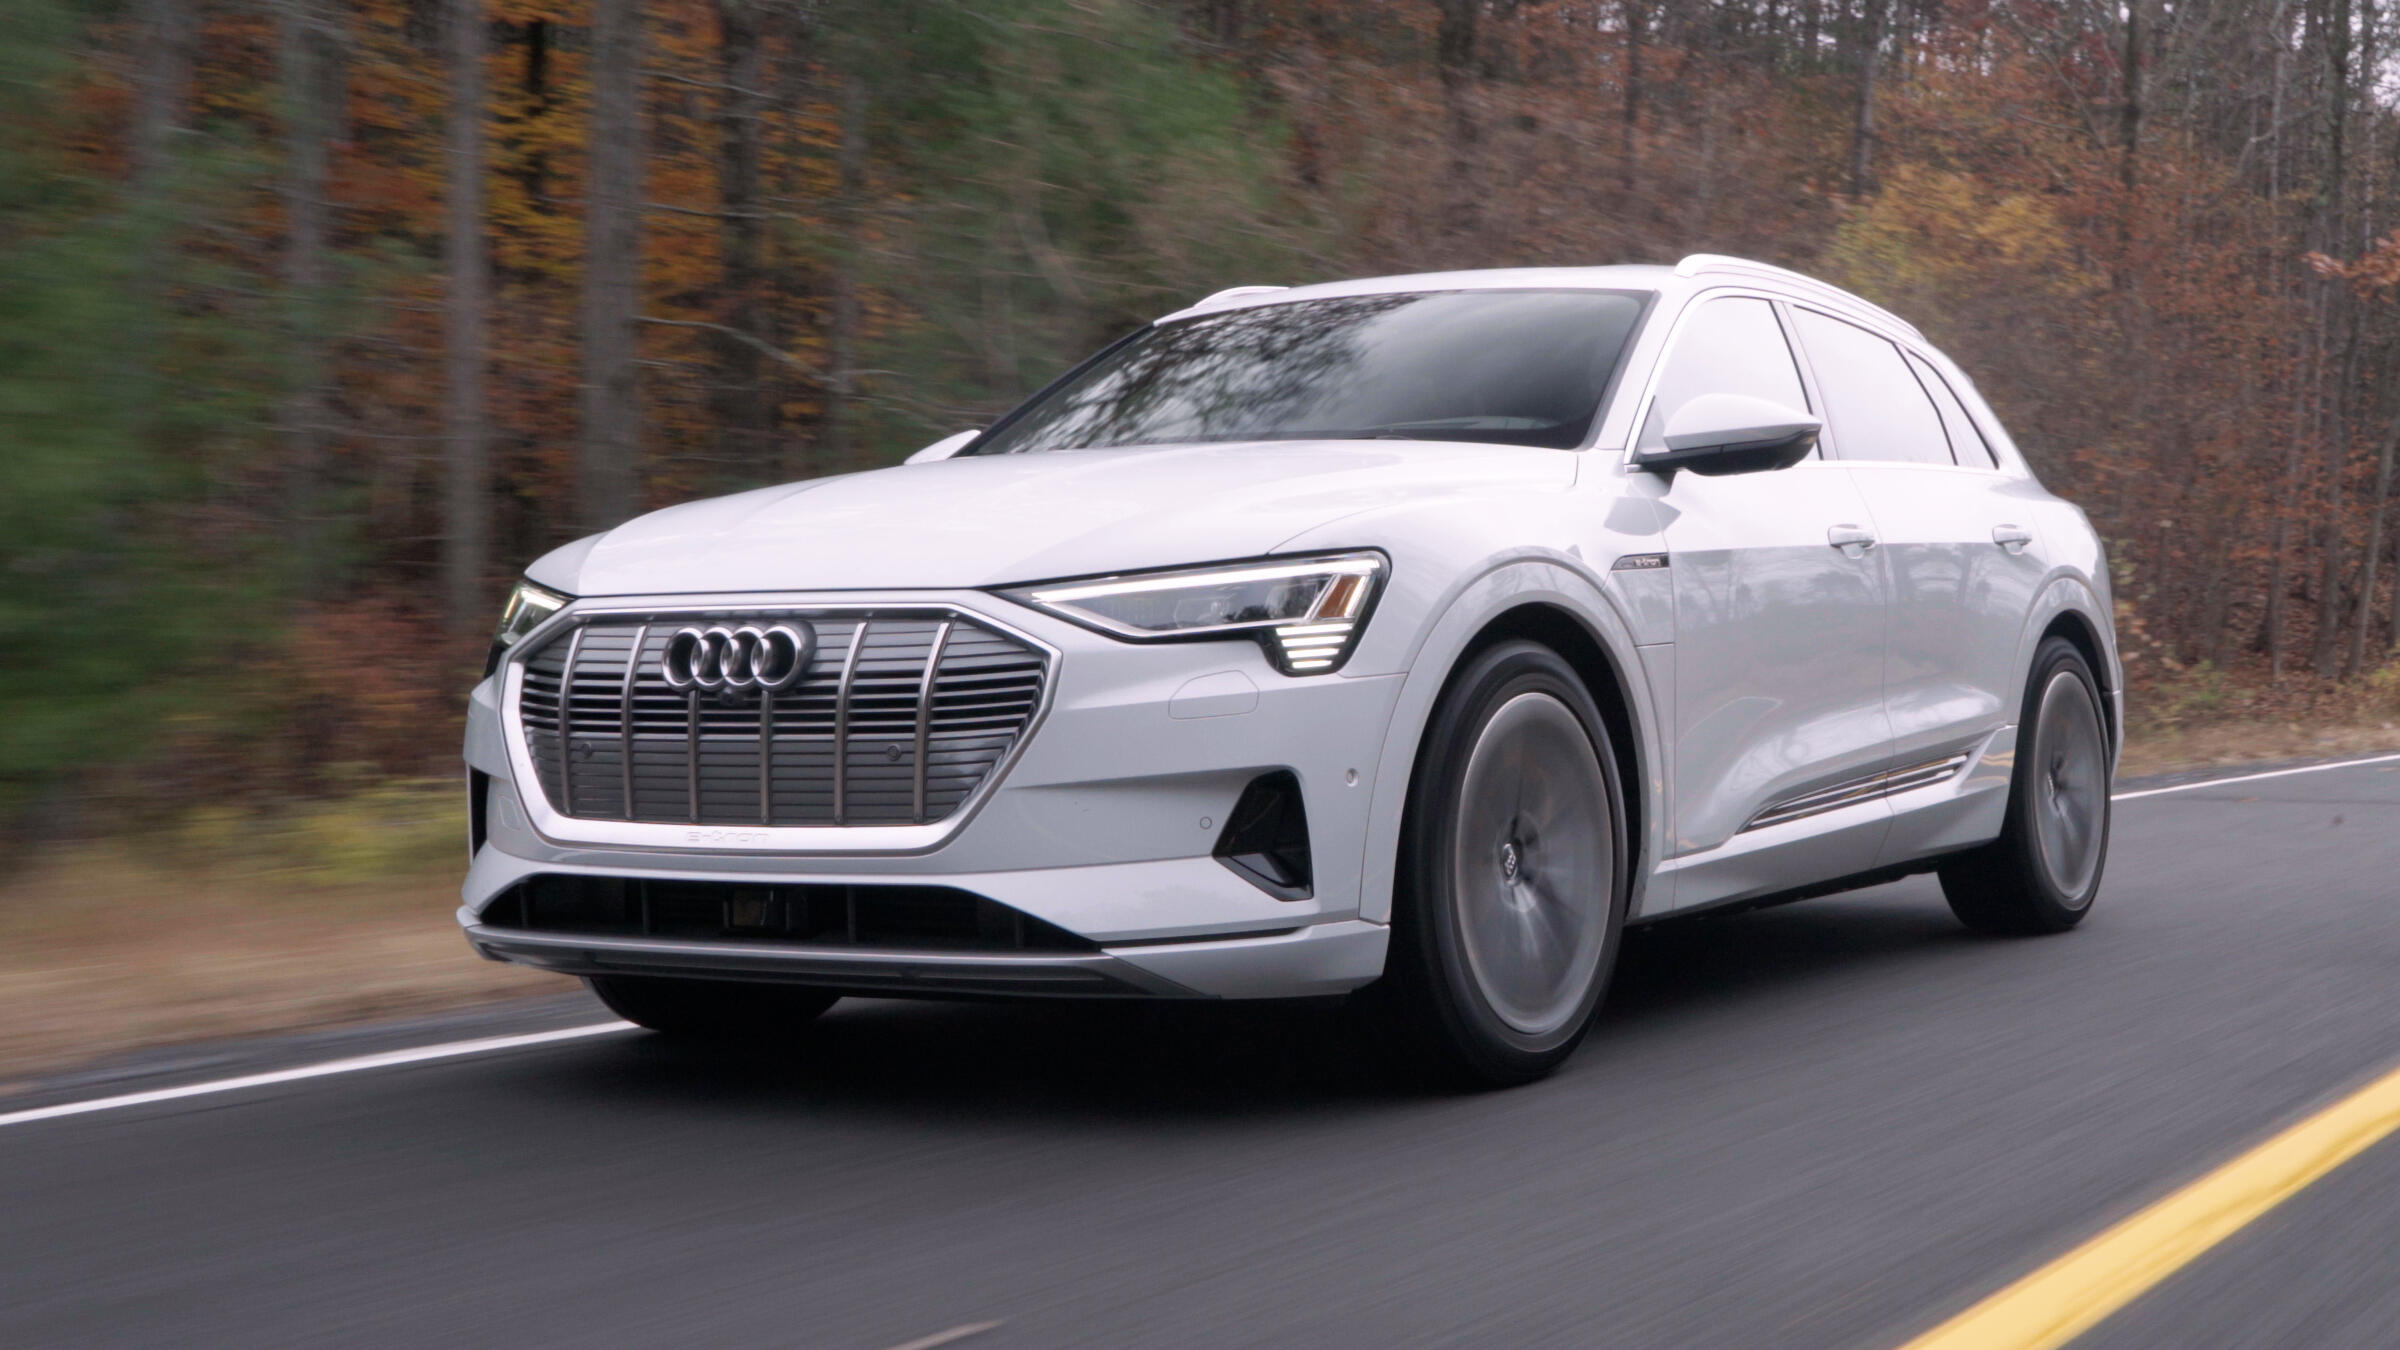 Video: Audi's E-Tron brings big, electric comfort to the road